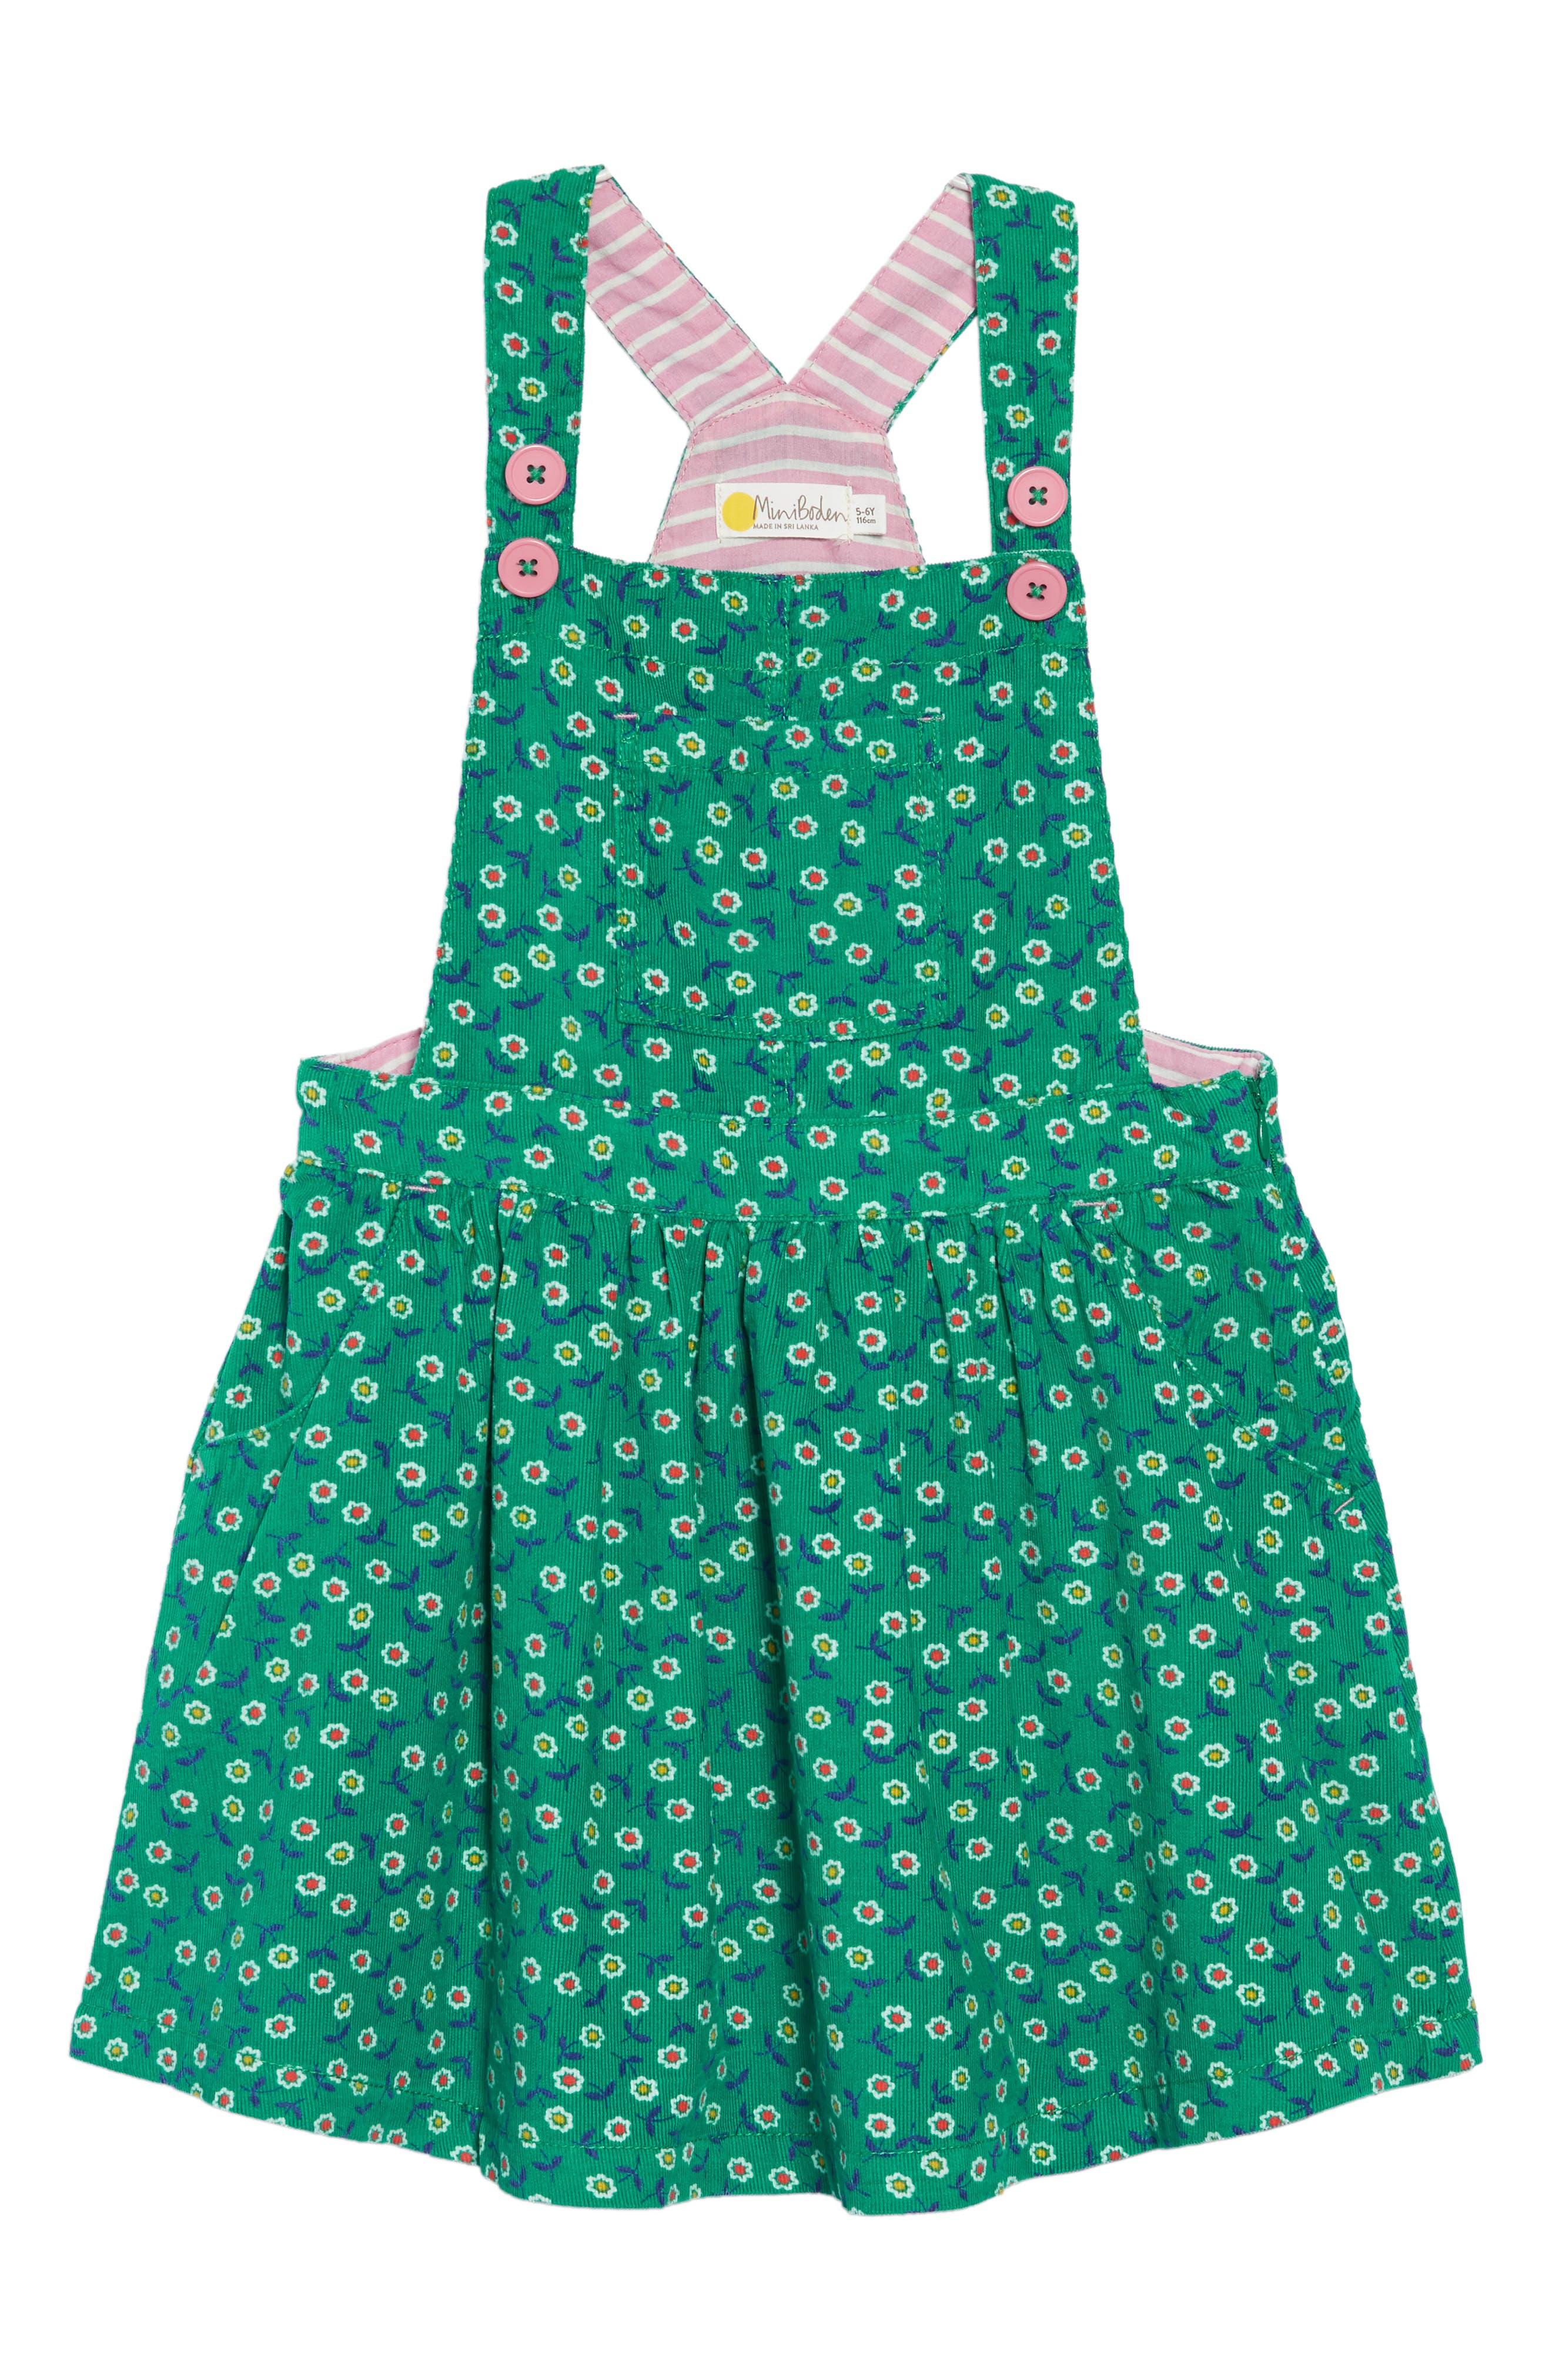 MINI BODEN Dungaree Overall Dress, Main, color, 315